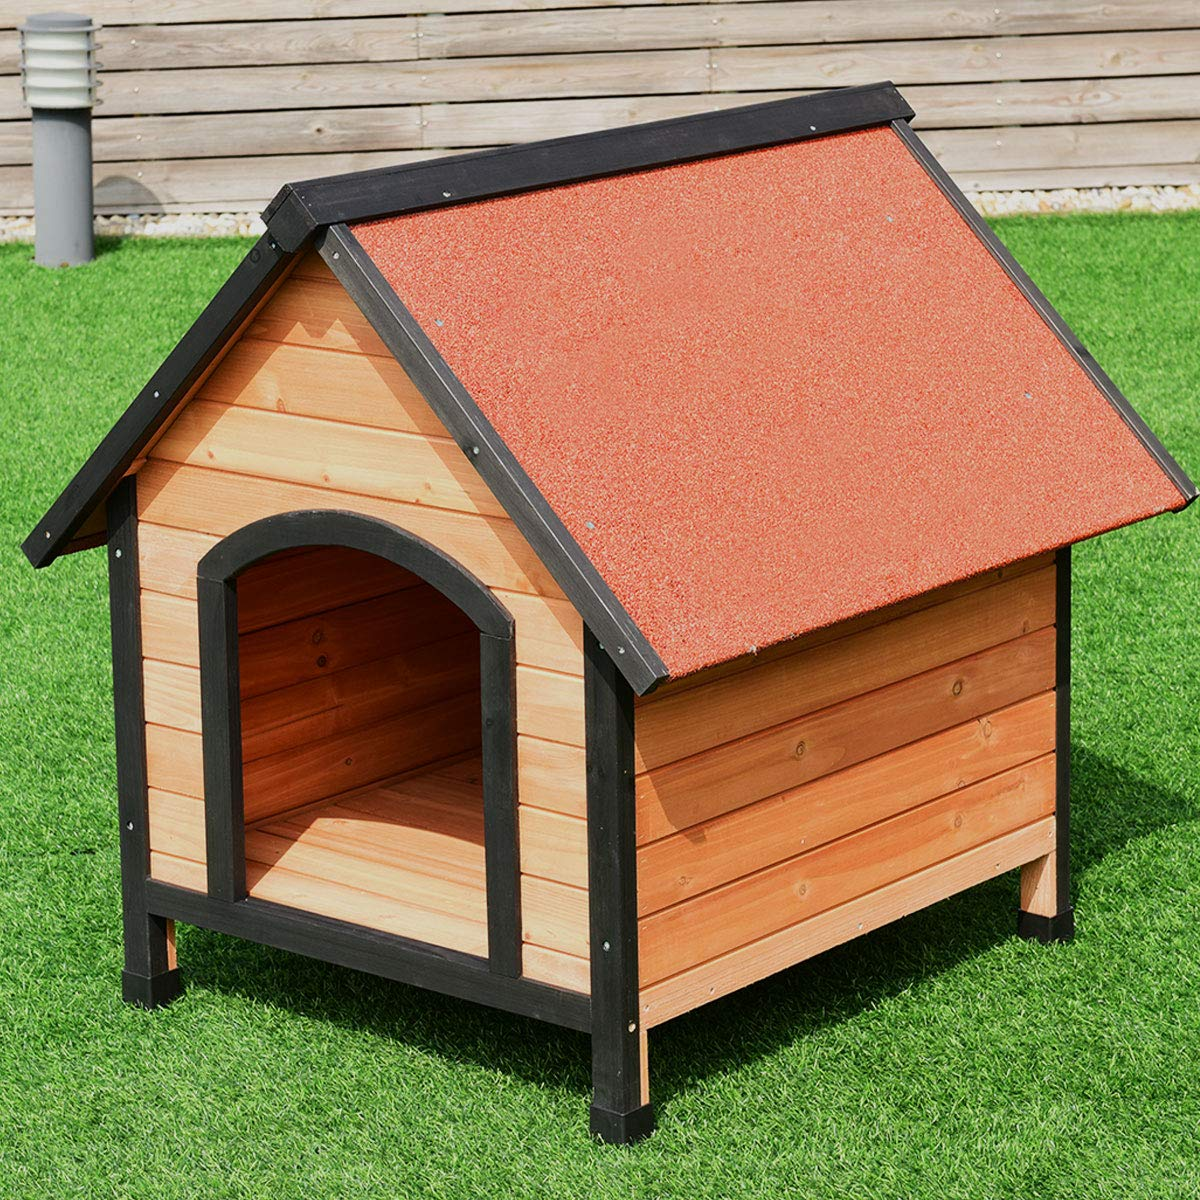 Large Tangkula Pet Dog House Outdoor Weather Waterproof Pet House Wood Pet Kennel Natural Wooden Dog House Home with Reddish Brown Roof 3 Size (S M L) (Large)